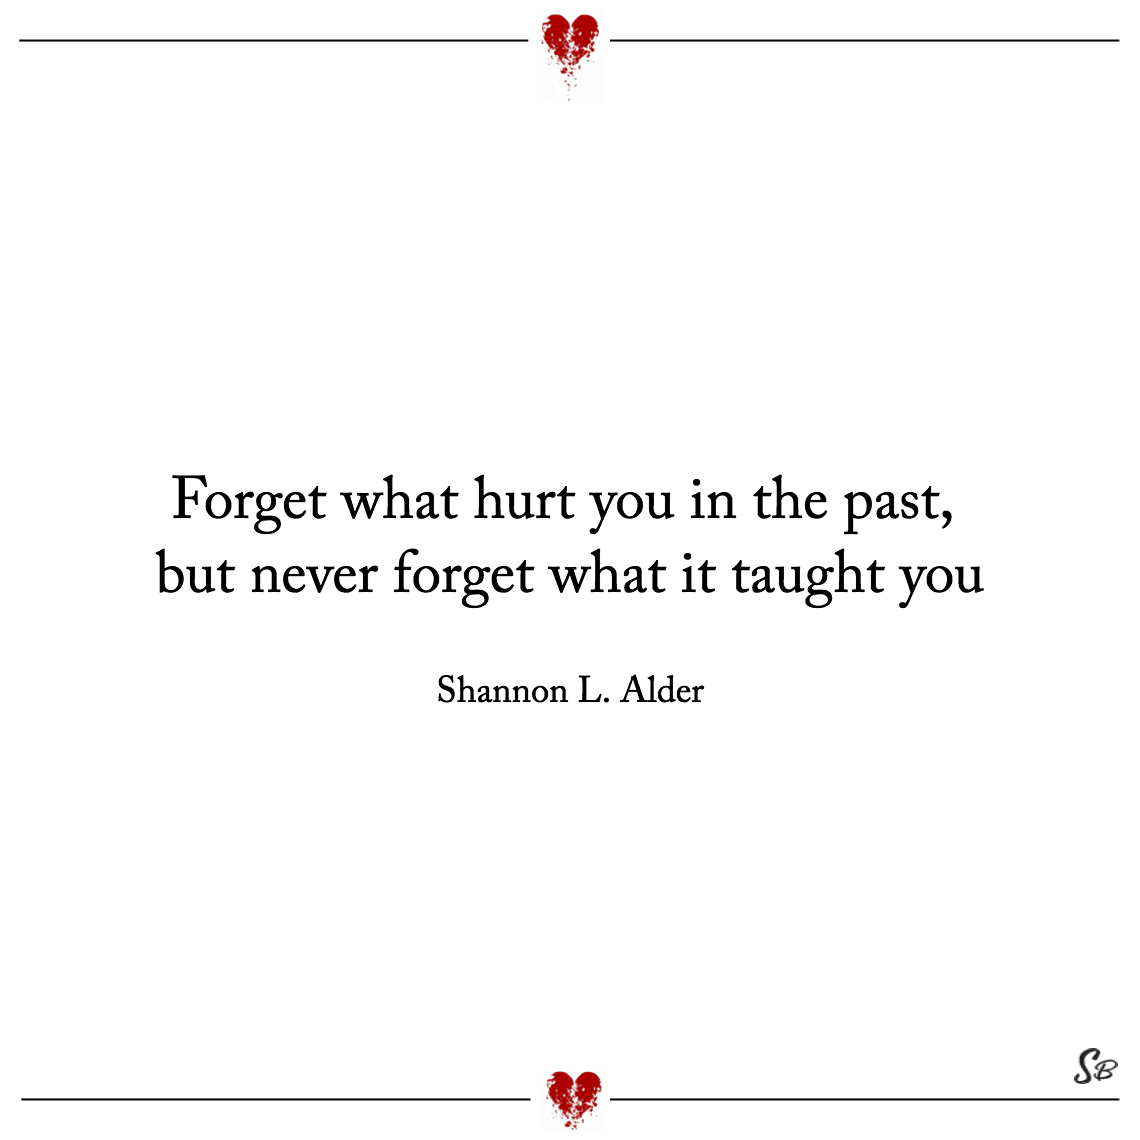 Forget what hurt you in the past, but never forget what it taught you shannon l. alder feeling hurt pain quotes